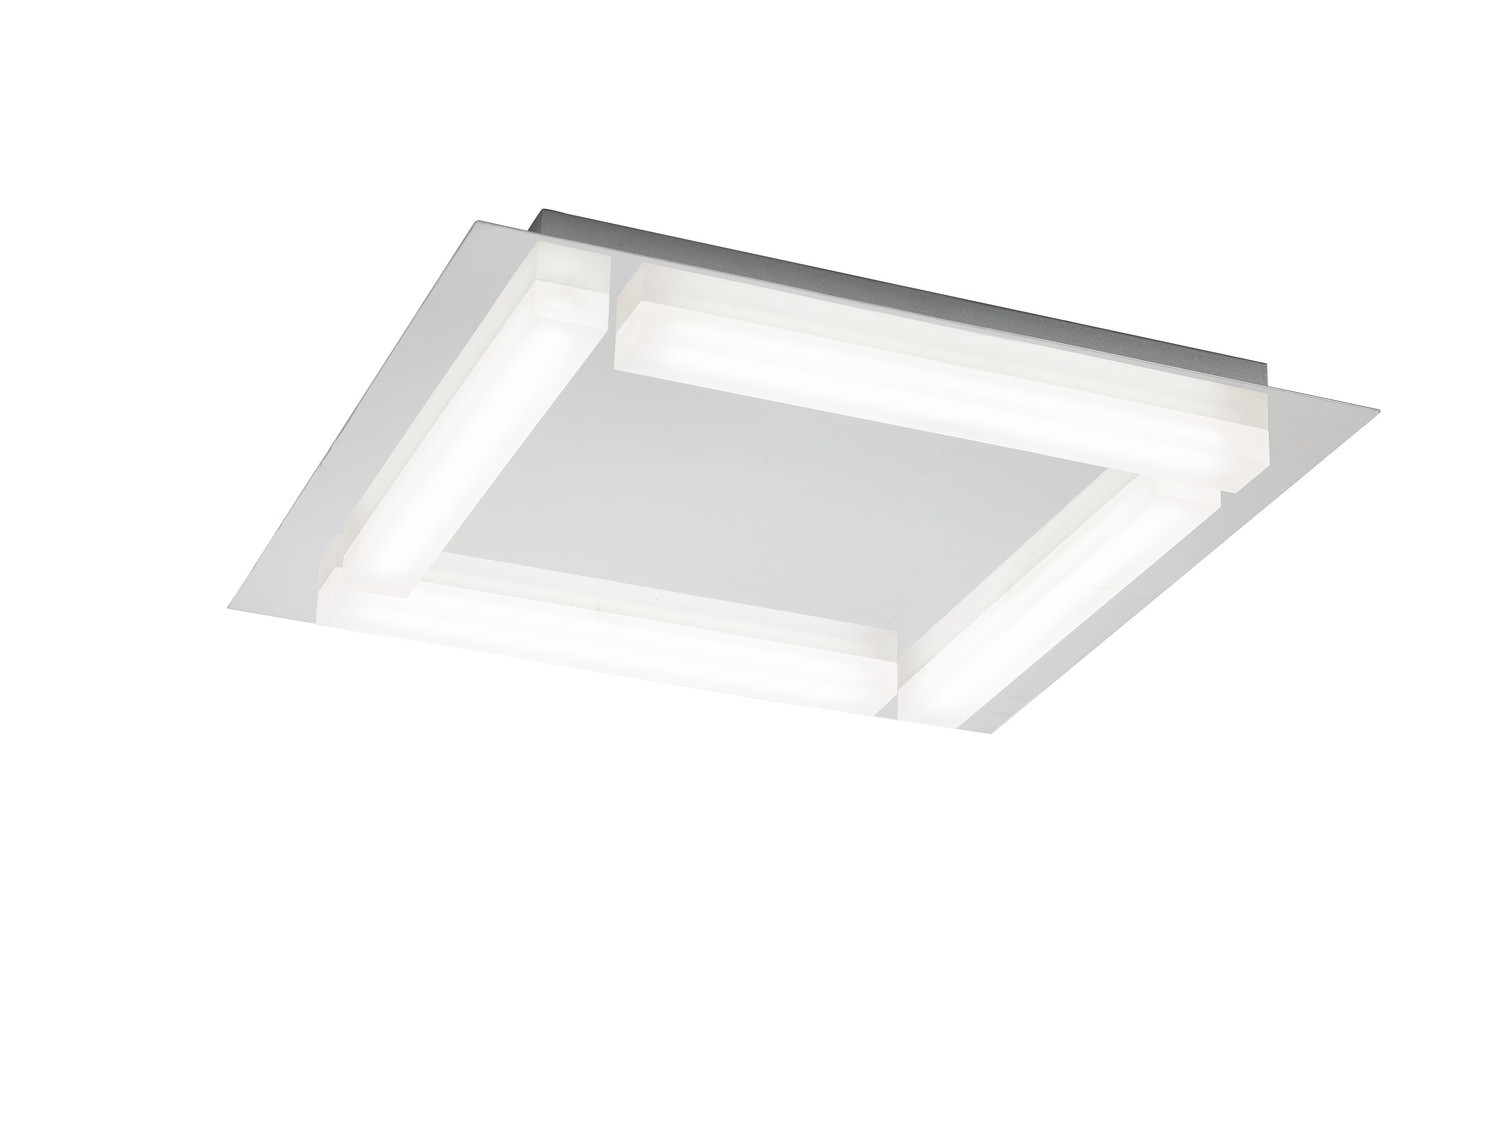 Verona Ceiling 4 Light 20W LED 3000K, 1800lm, Polished Chrome/Frosted Acrylic, 3yrs Warranty